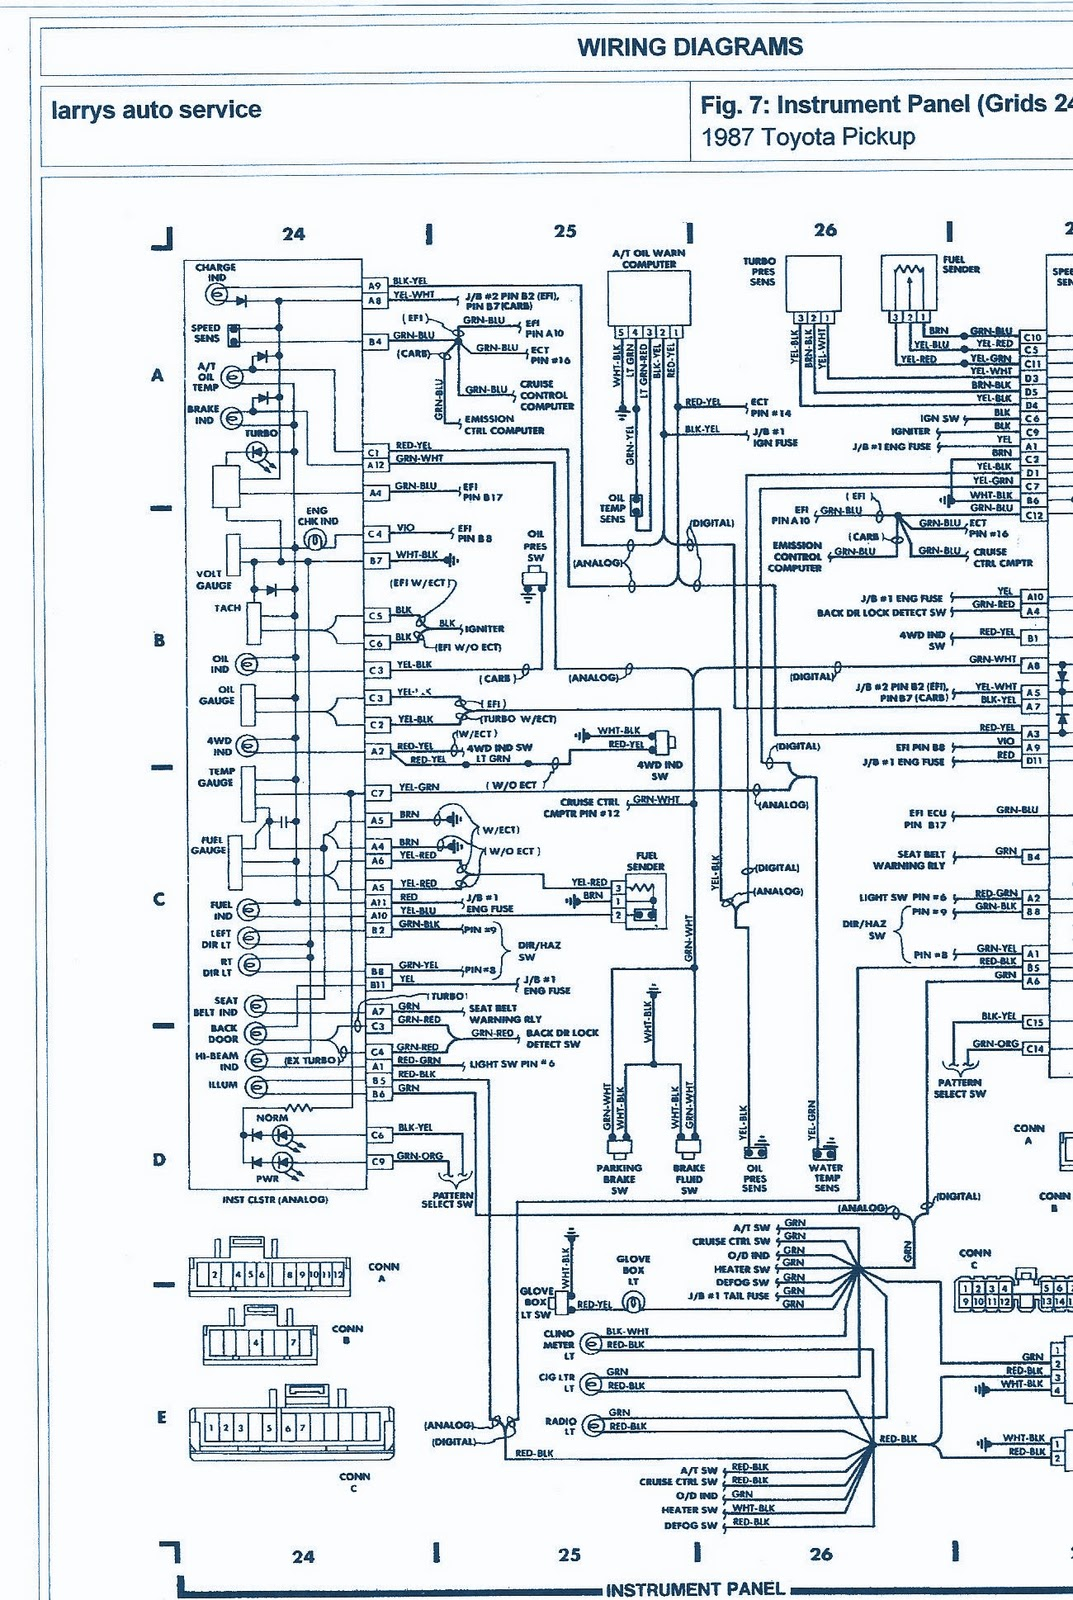 1987 Toyota Pickup 4wd 22r engine Wiring Diagram | Auto ...